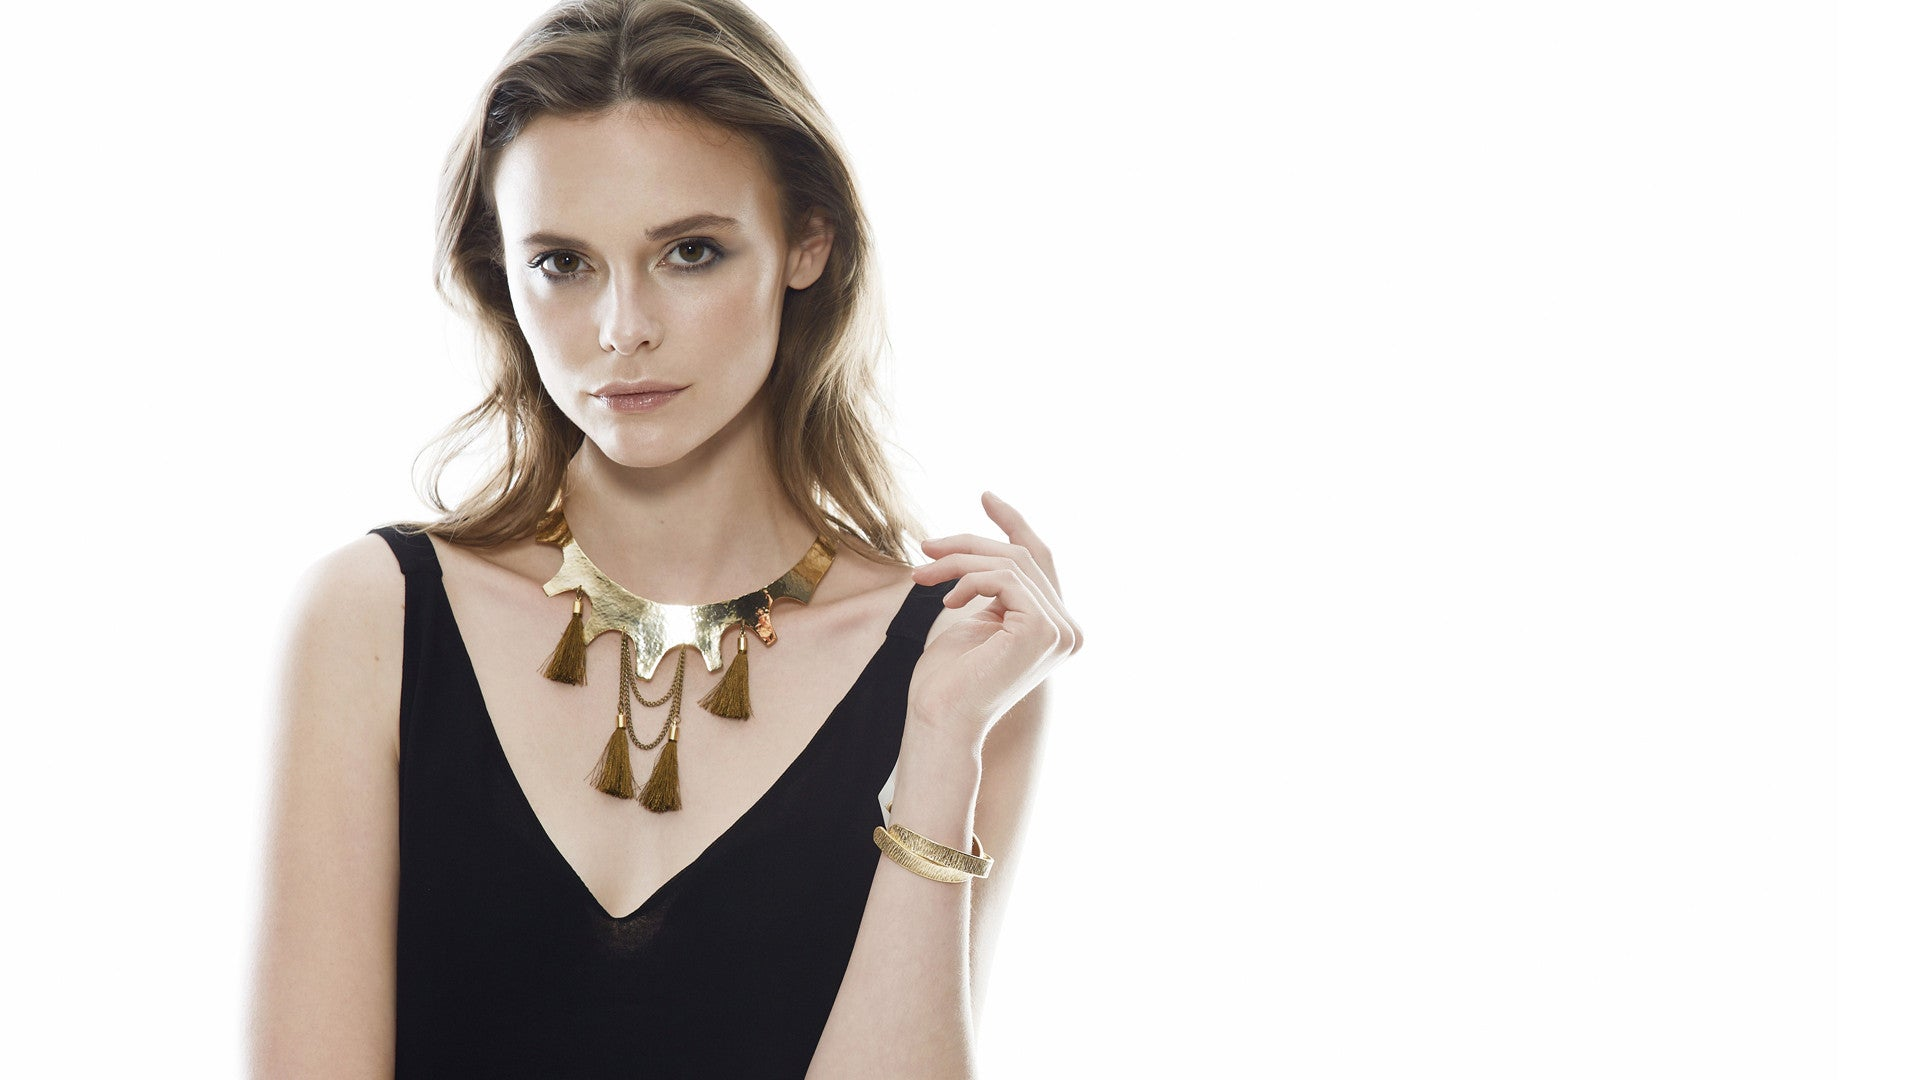 HANDCRAFTED JEWELRY THAT ACCENTS THE EFFORTLESS CHIC STYLE